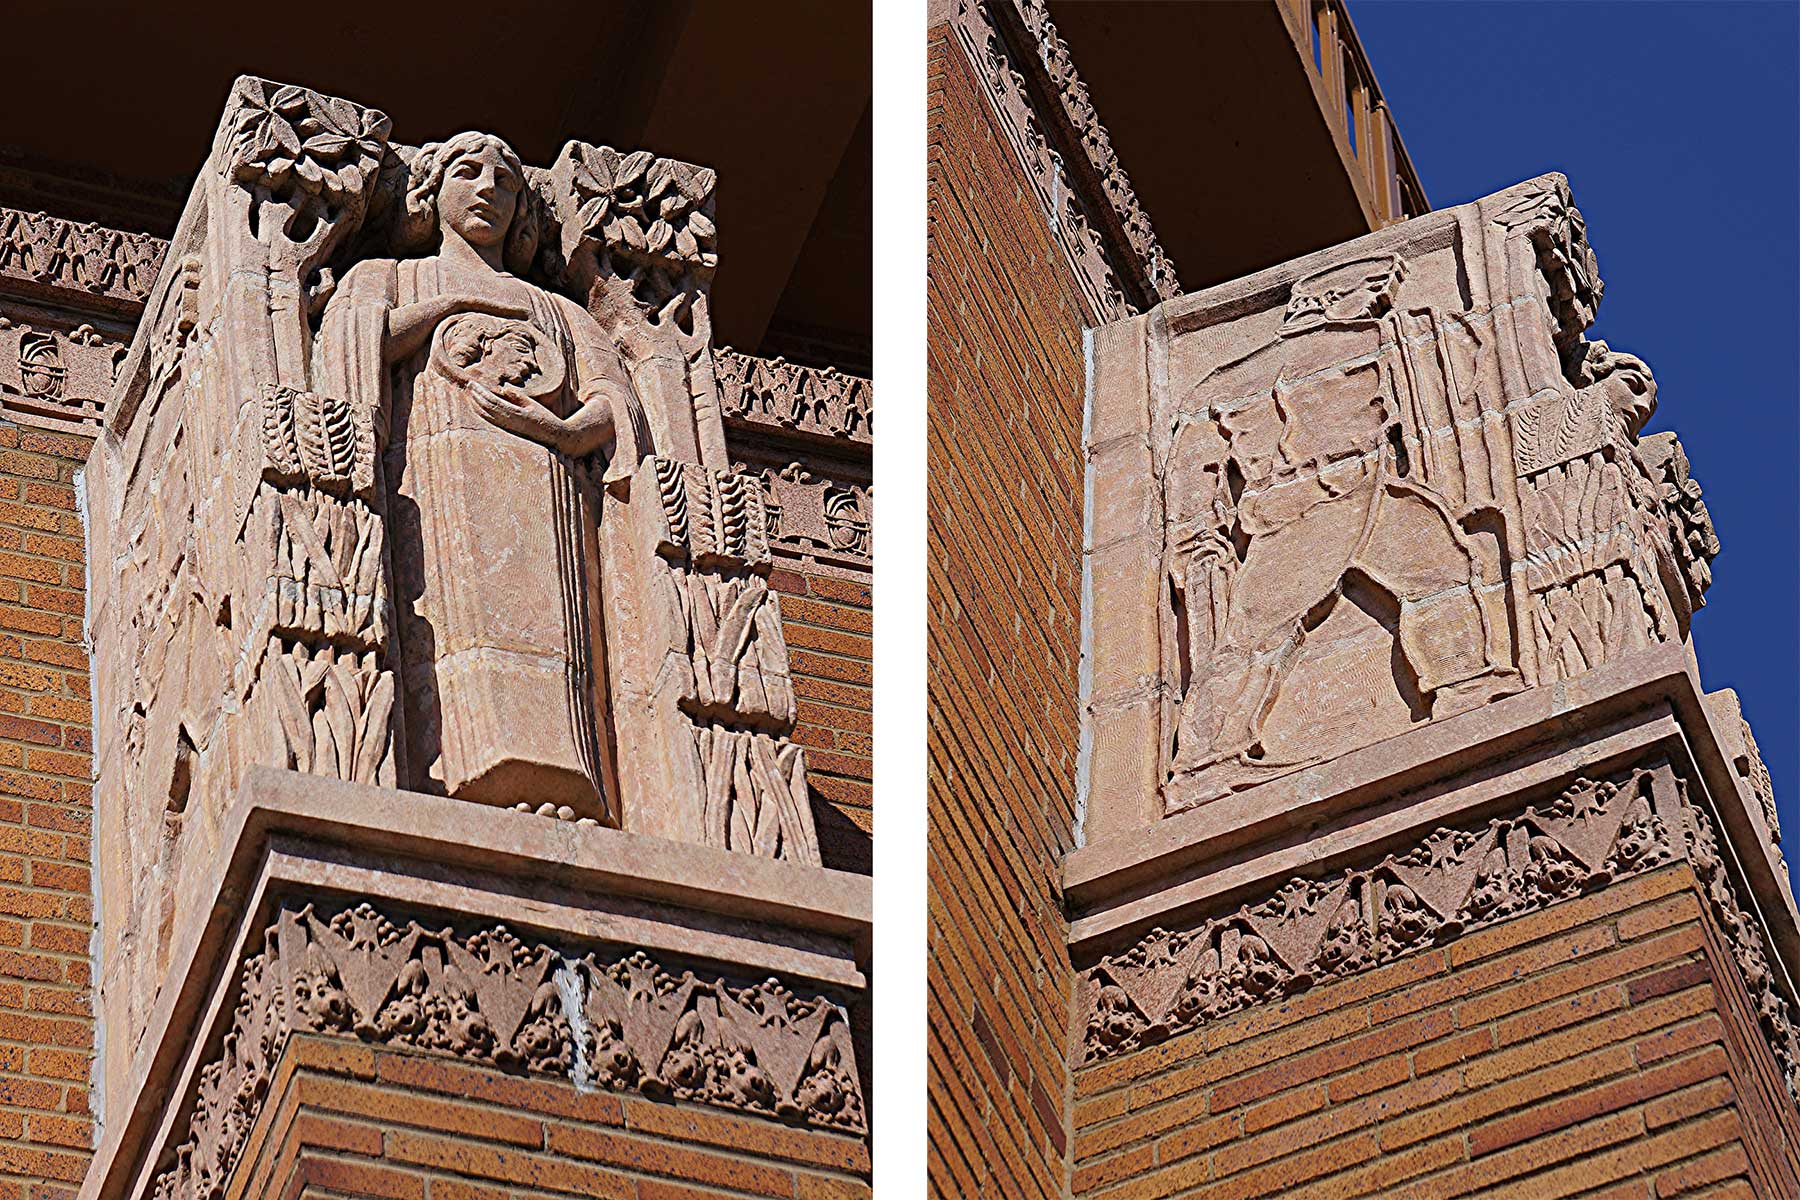 Close-up views of Emil Zettler's capitals for Old Second National Bank, Aurora, Illinois. Photos by Earl R. Shumaker.